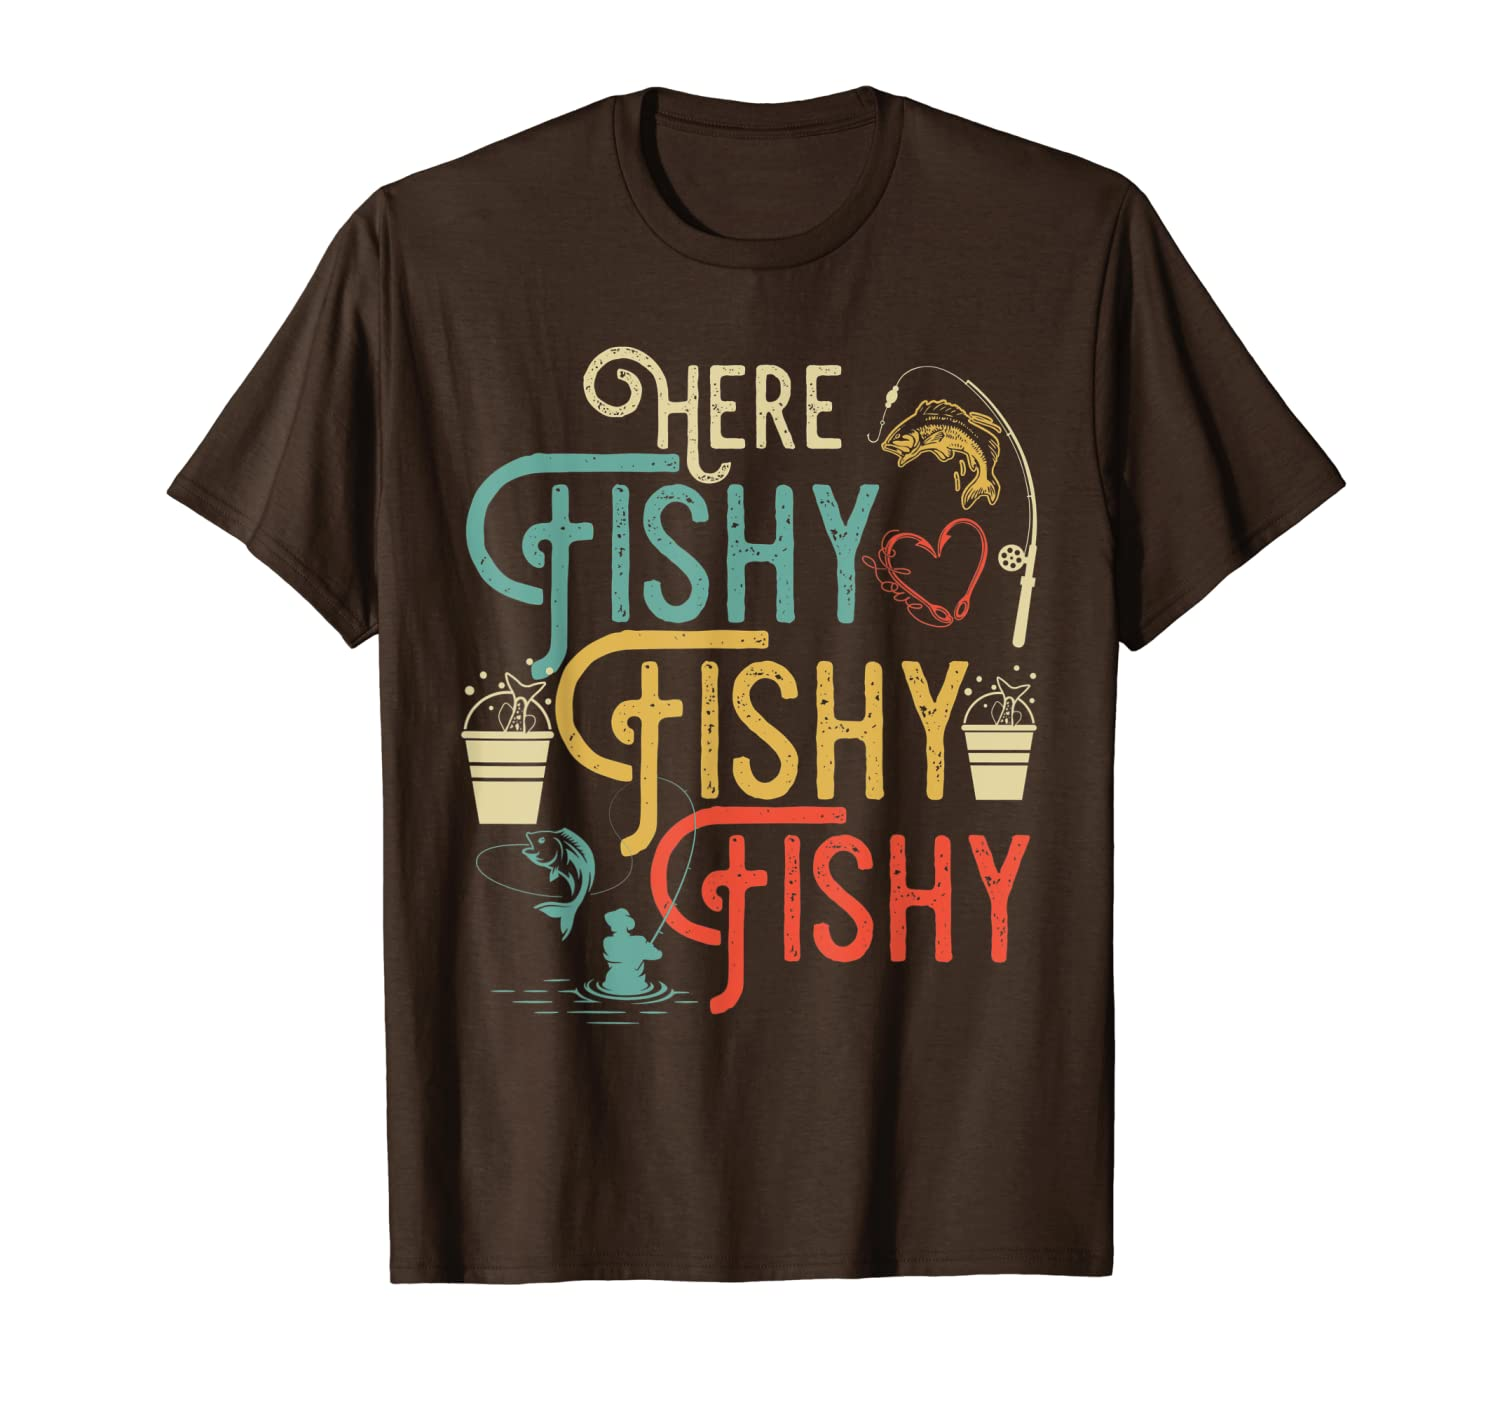 Here Fishy Fishy Fishy T-Shirt Best Humor Fishing Gifts Unisex Tshirt